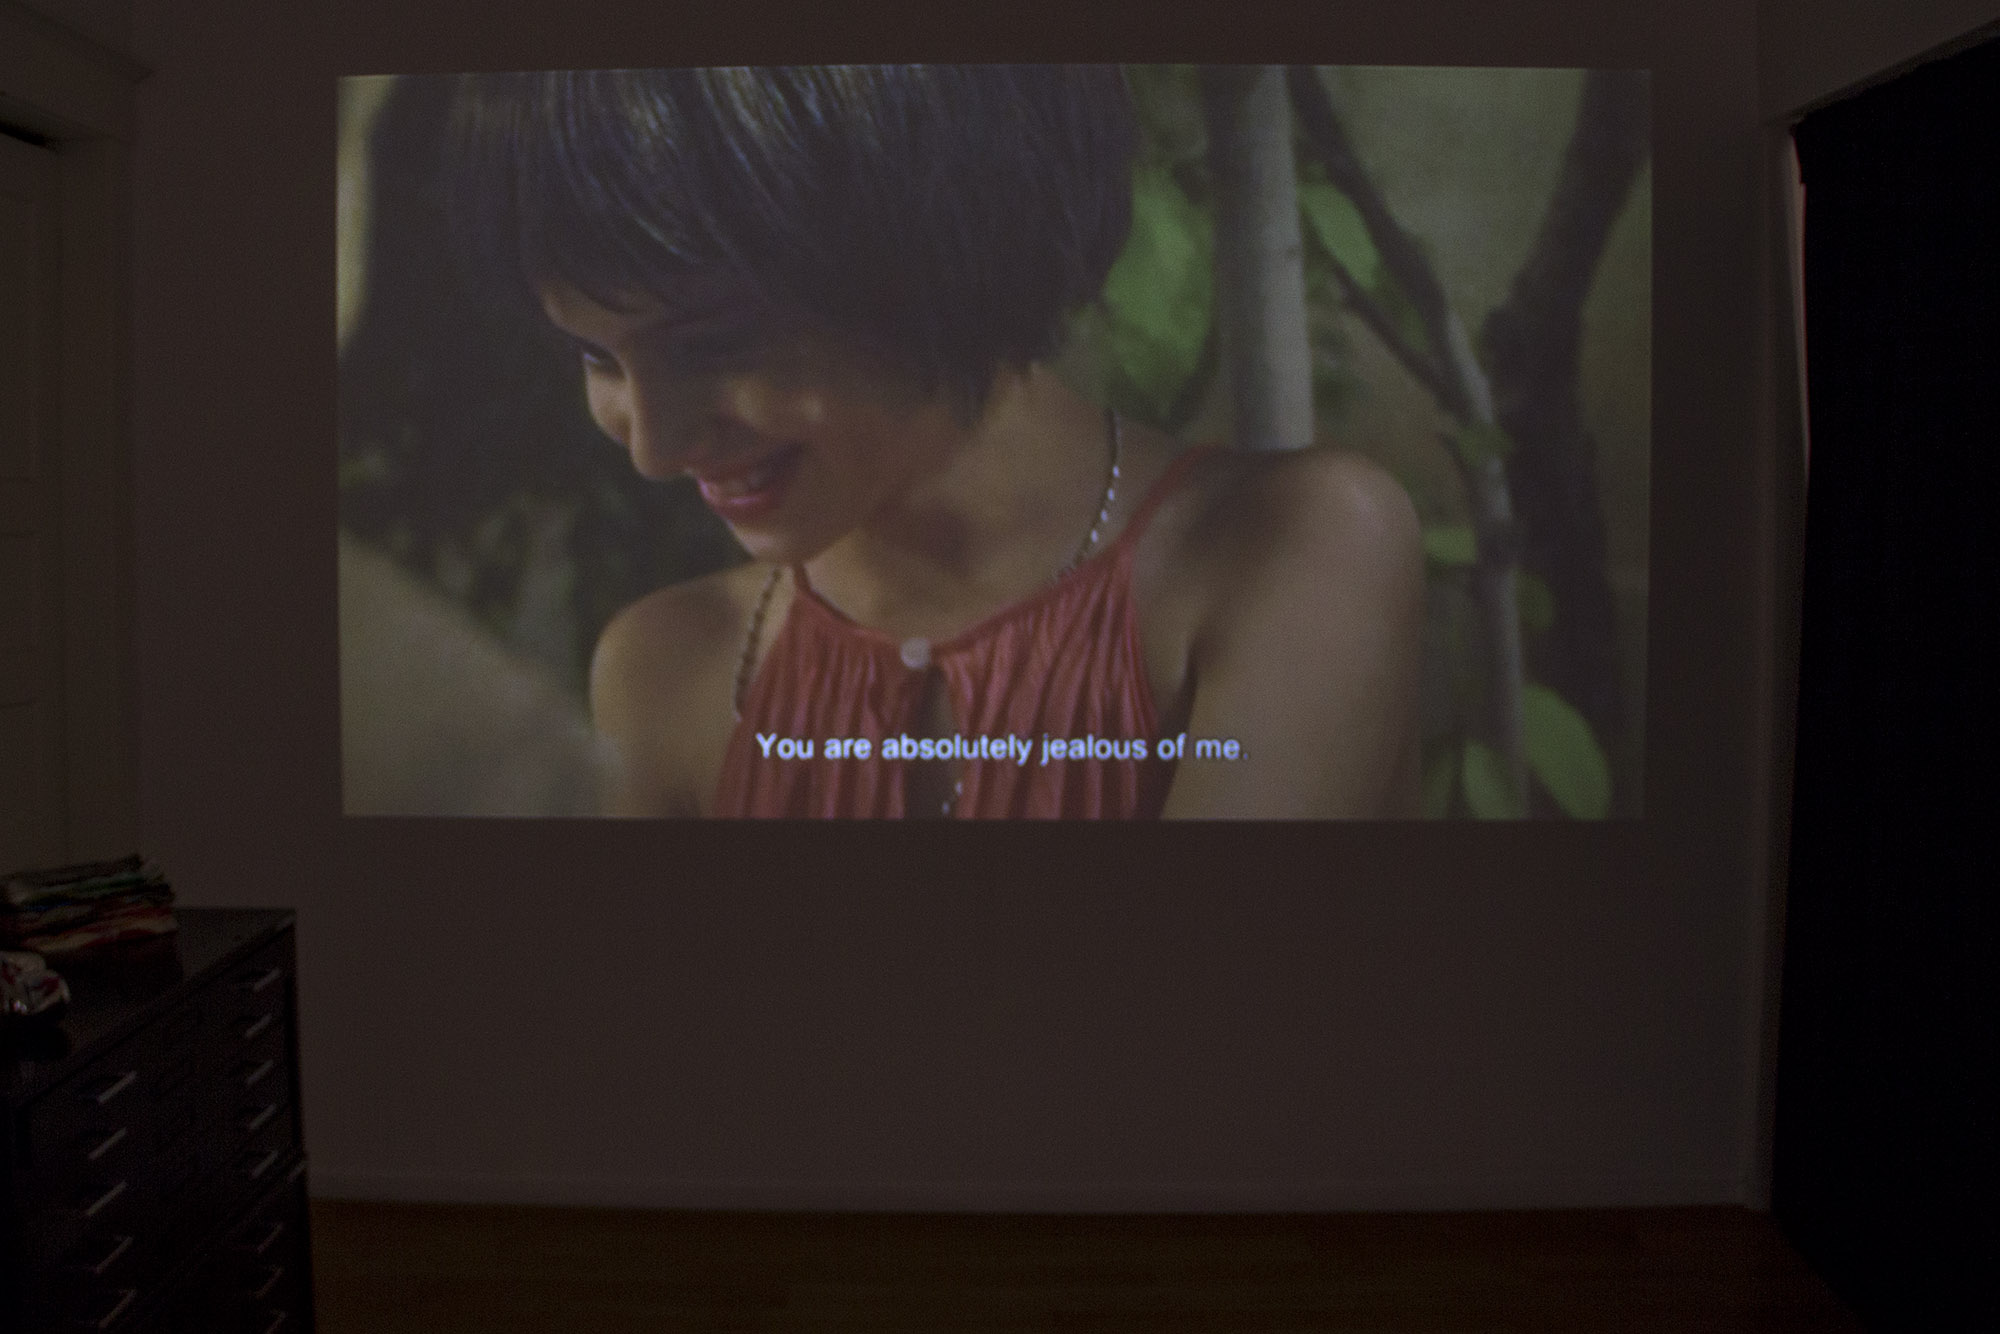 After Party (Detail), Curated by: Pegah Vaezi, Video Installation on view in the second room of the gallery, by: Anahita Ghazvinizadeh, When the Kid was a Kid, 2011, Iran, 17 minute film. To see more work in the exhibition visit  Fouladi Projects Website .